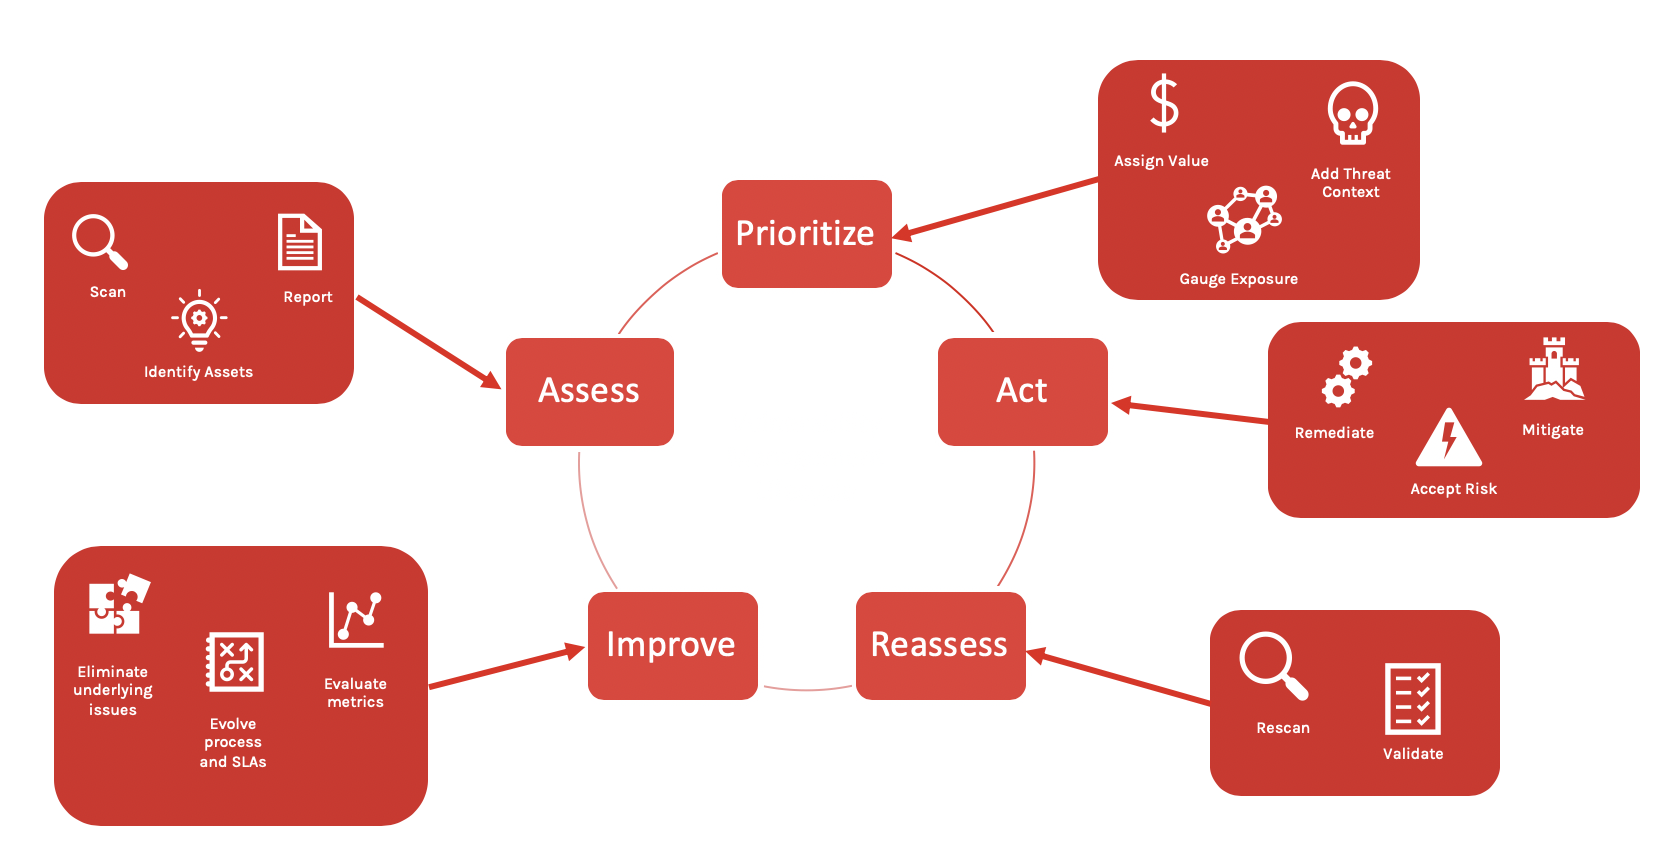 The Vulnerability Management Cycle